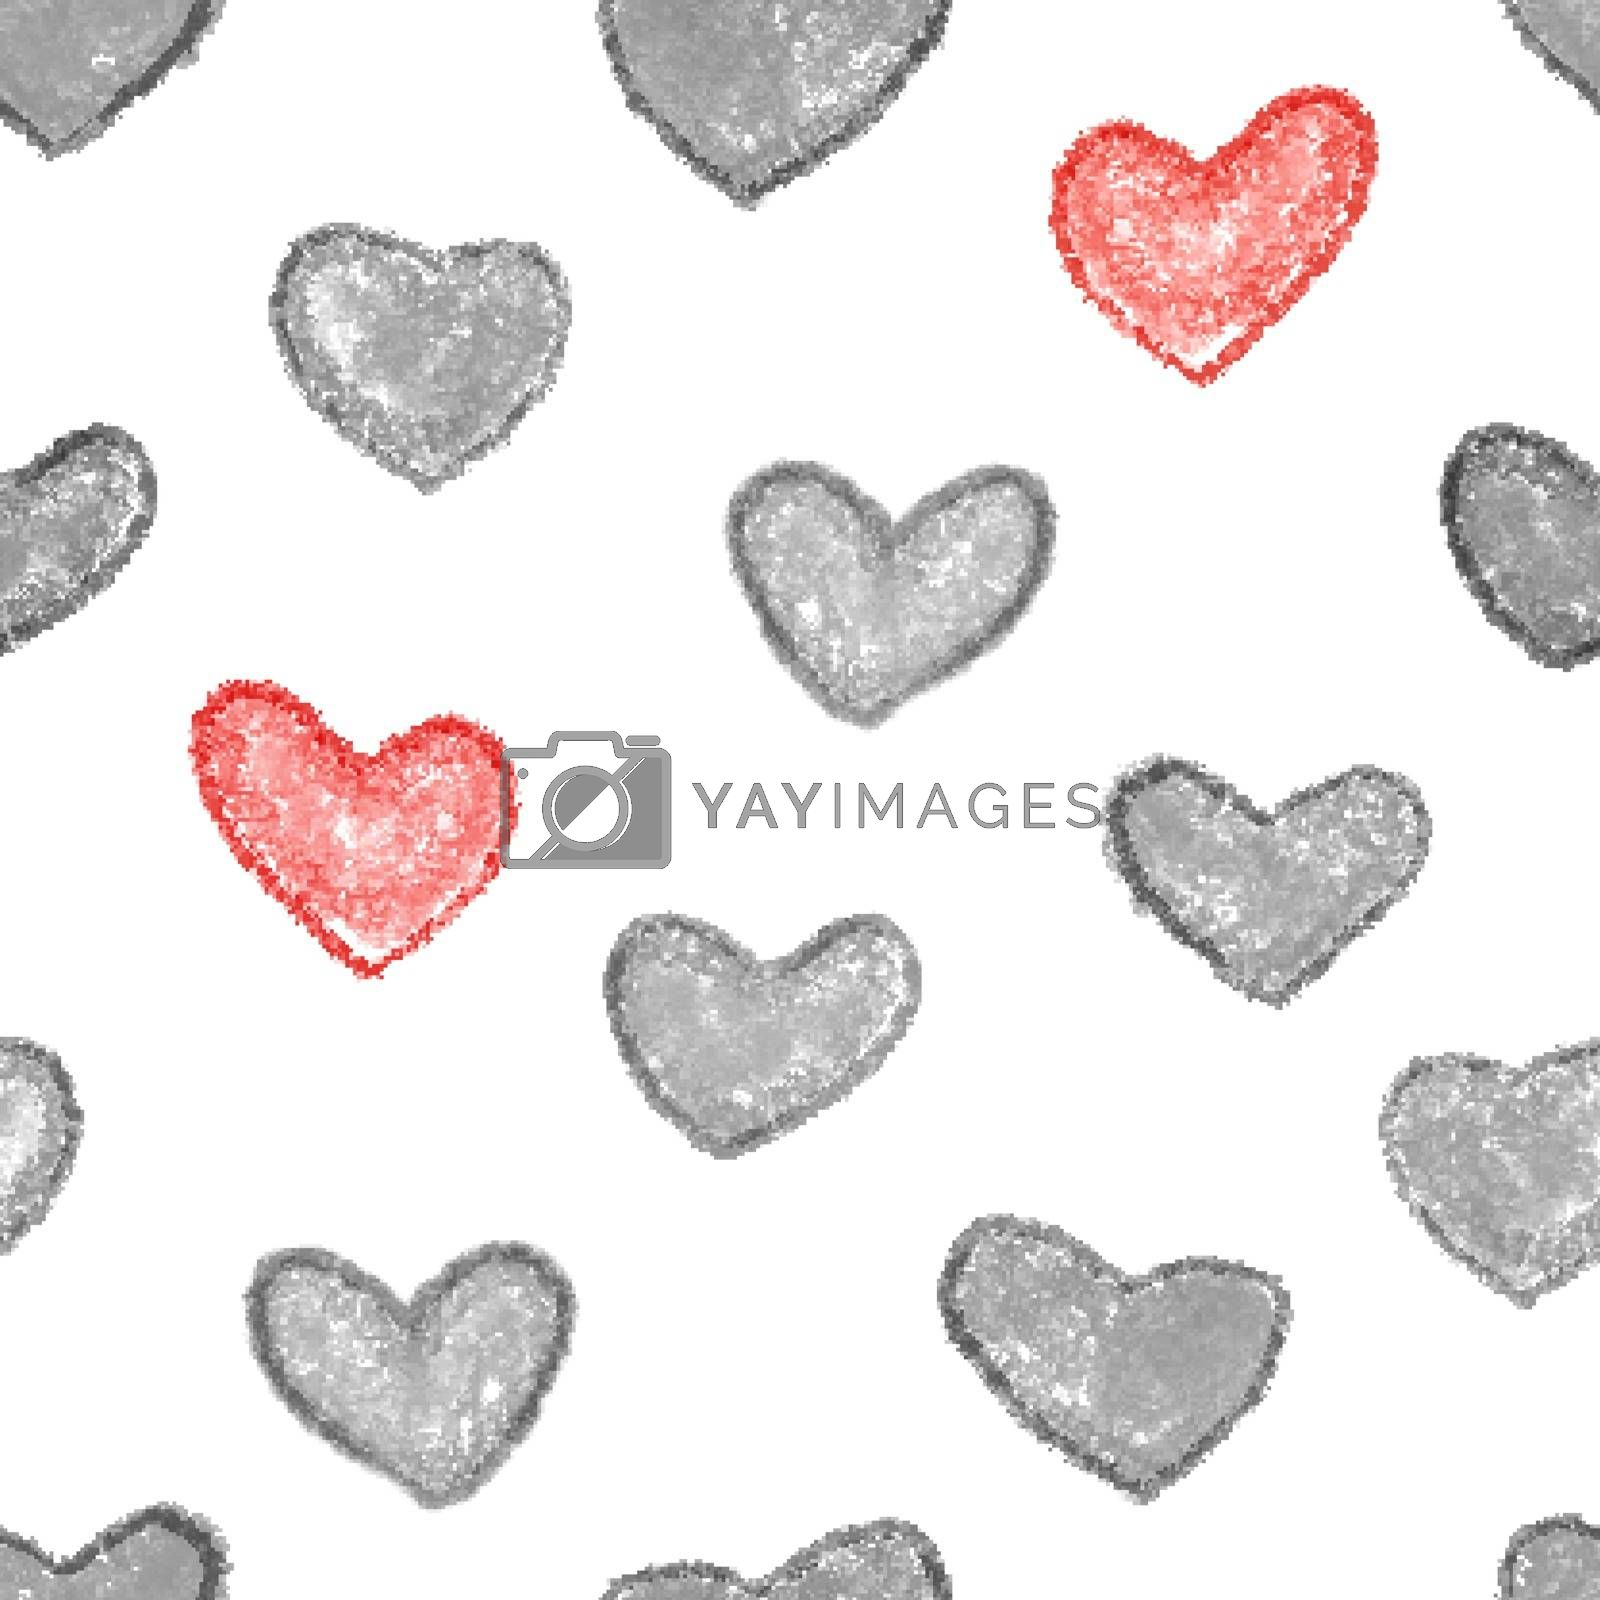 Monochrome and red heart seamless background.